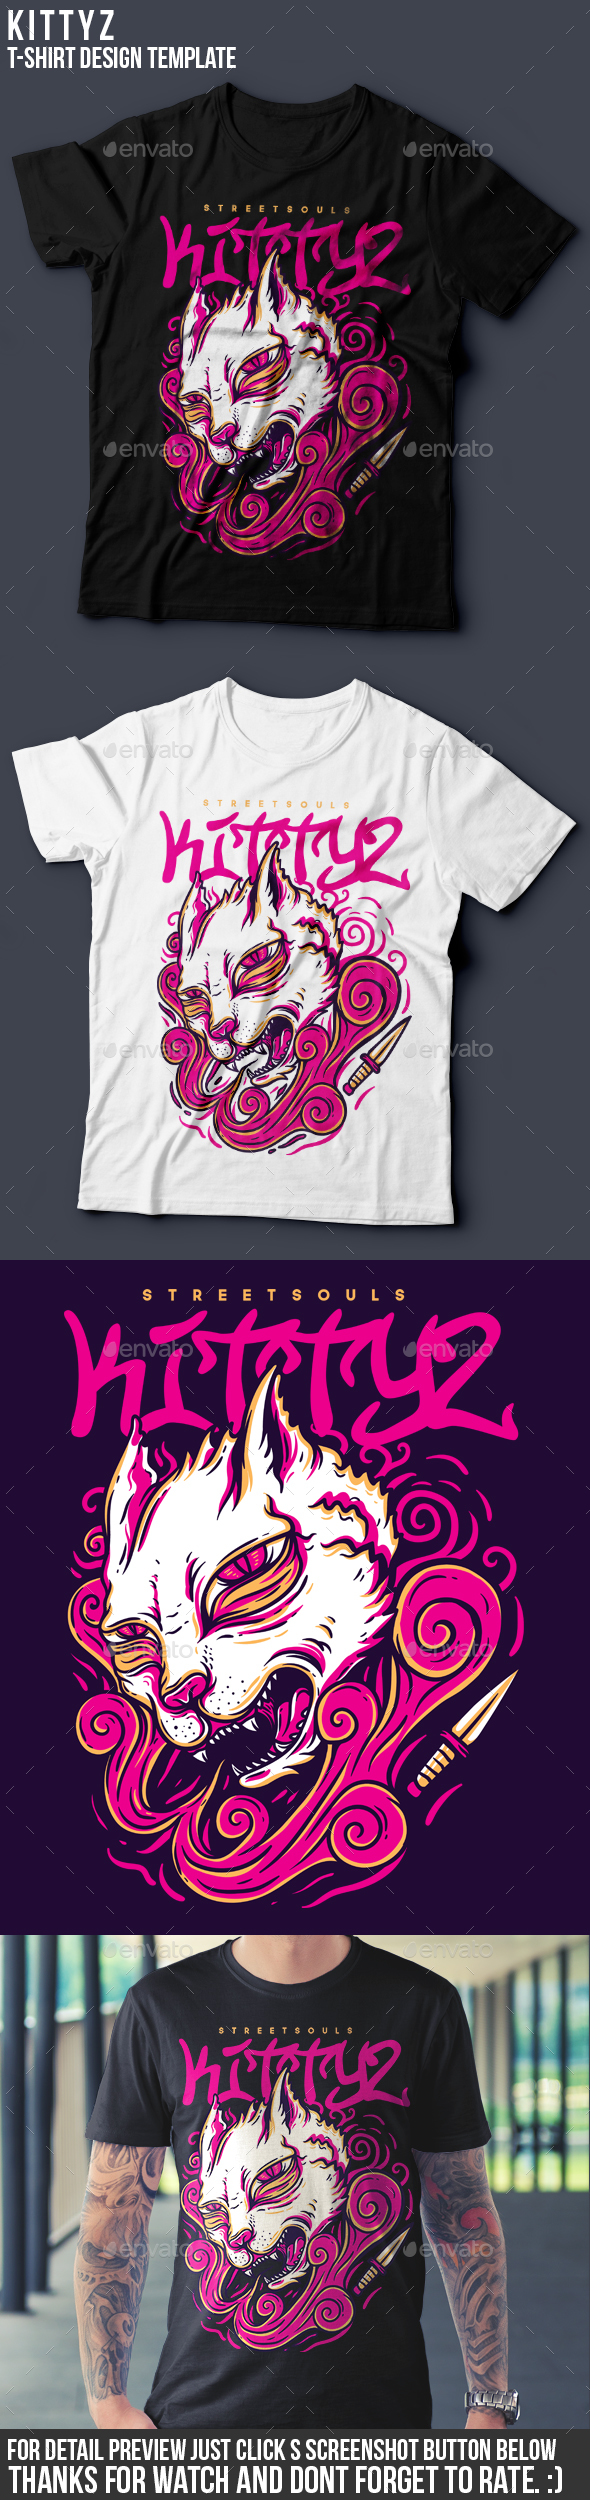 Kittyz T-Shirt Design - Funny Designs